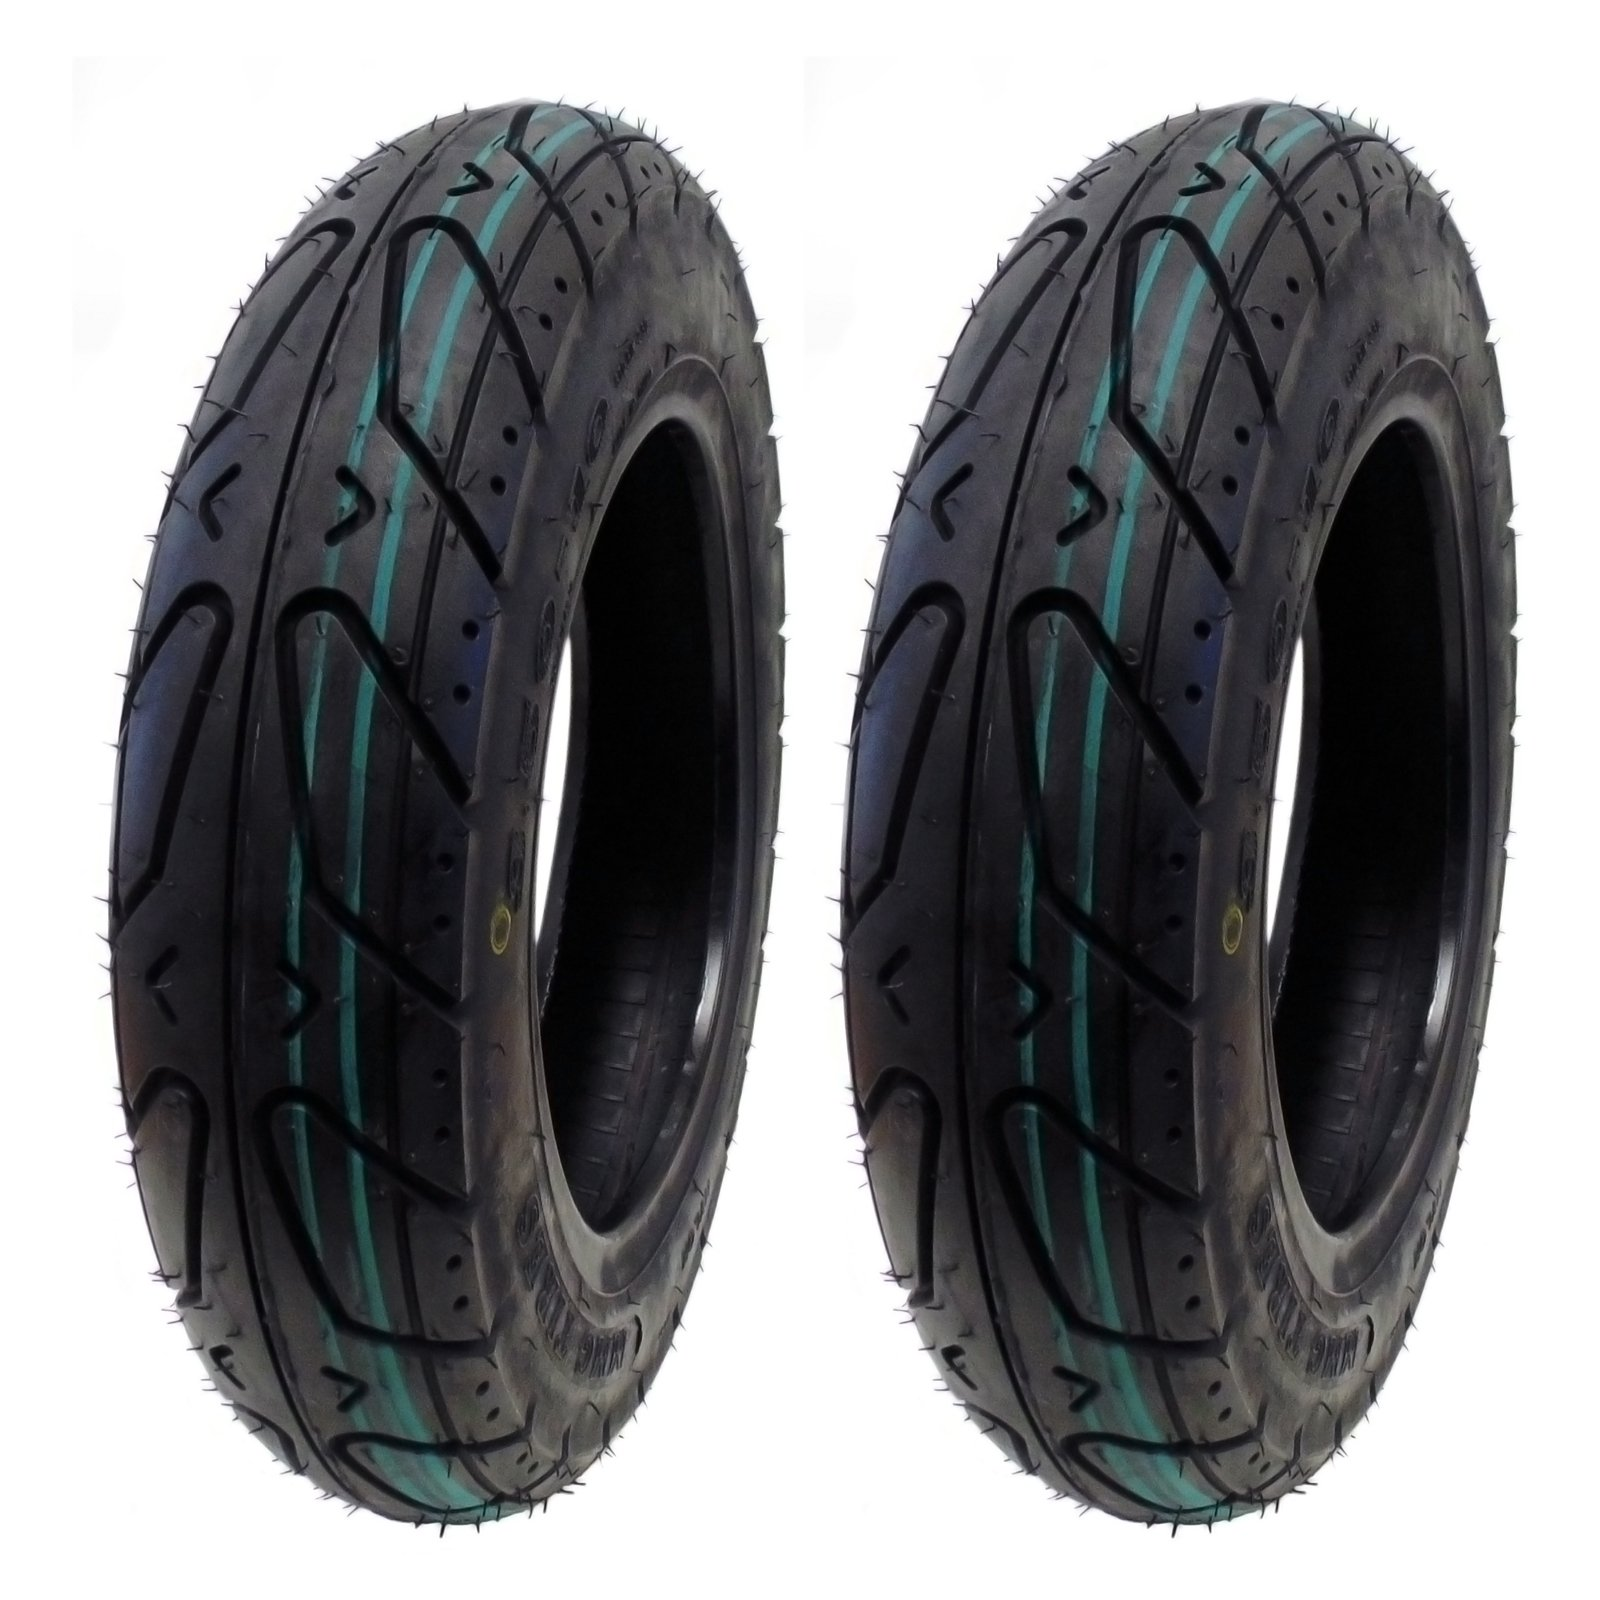 SET OF TWO: Scooter Tubeless Tire 3.50-10 Front or Rear fits on 10 Inch Rim